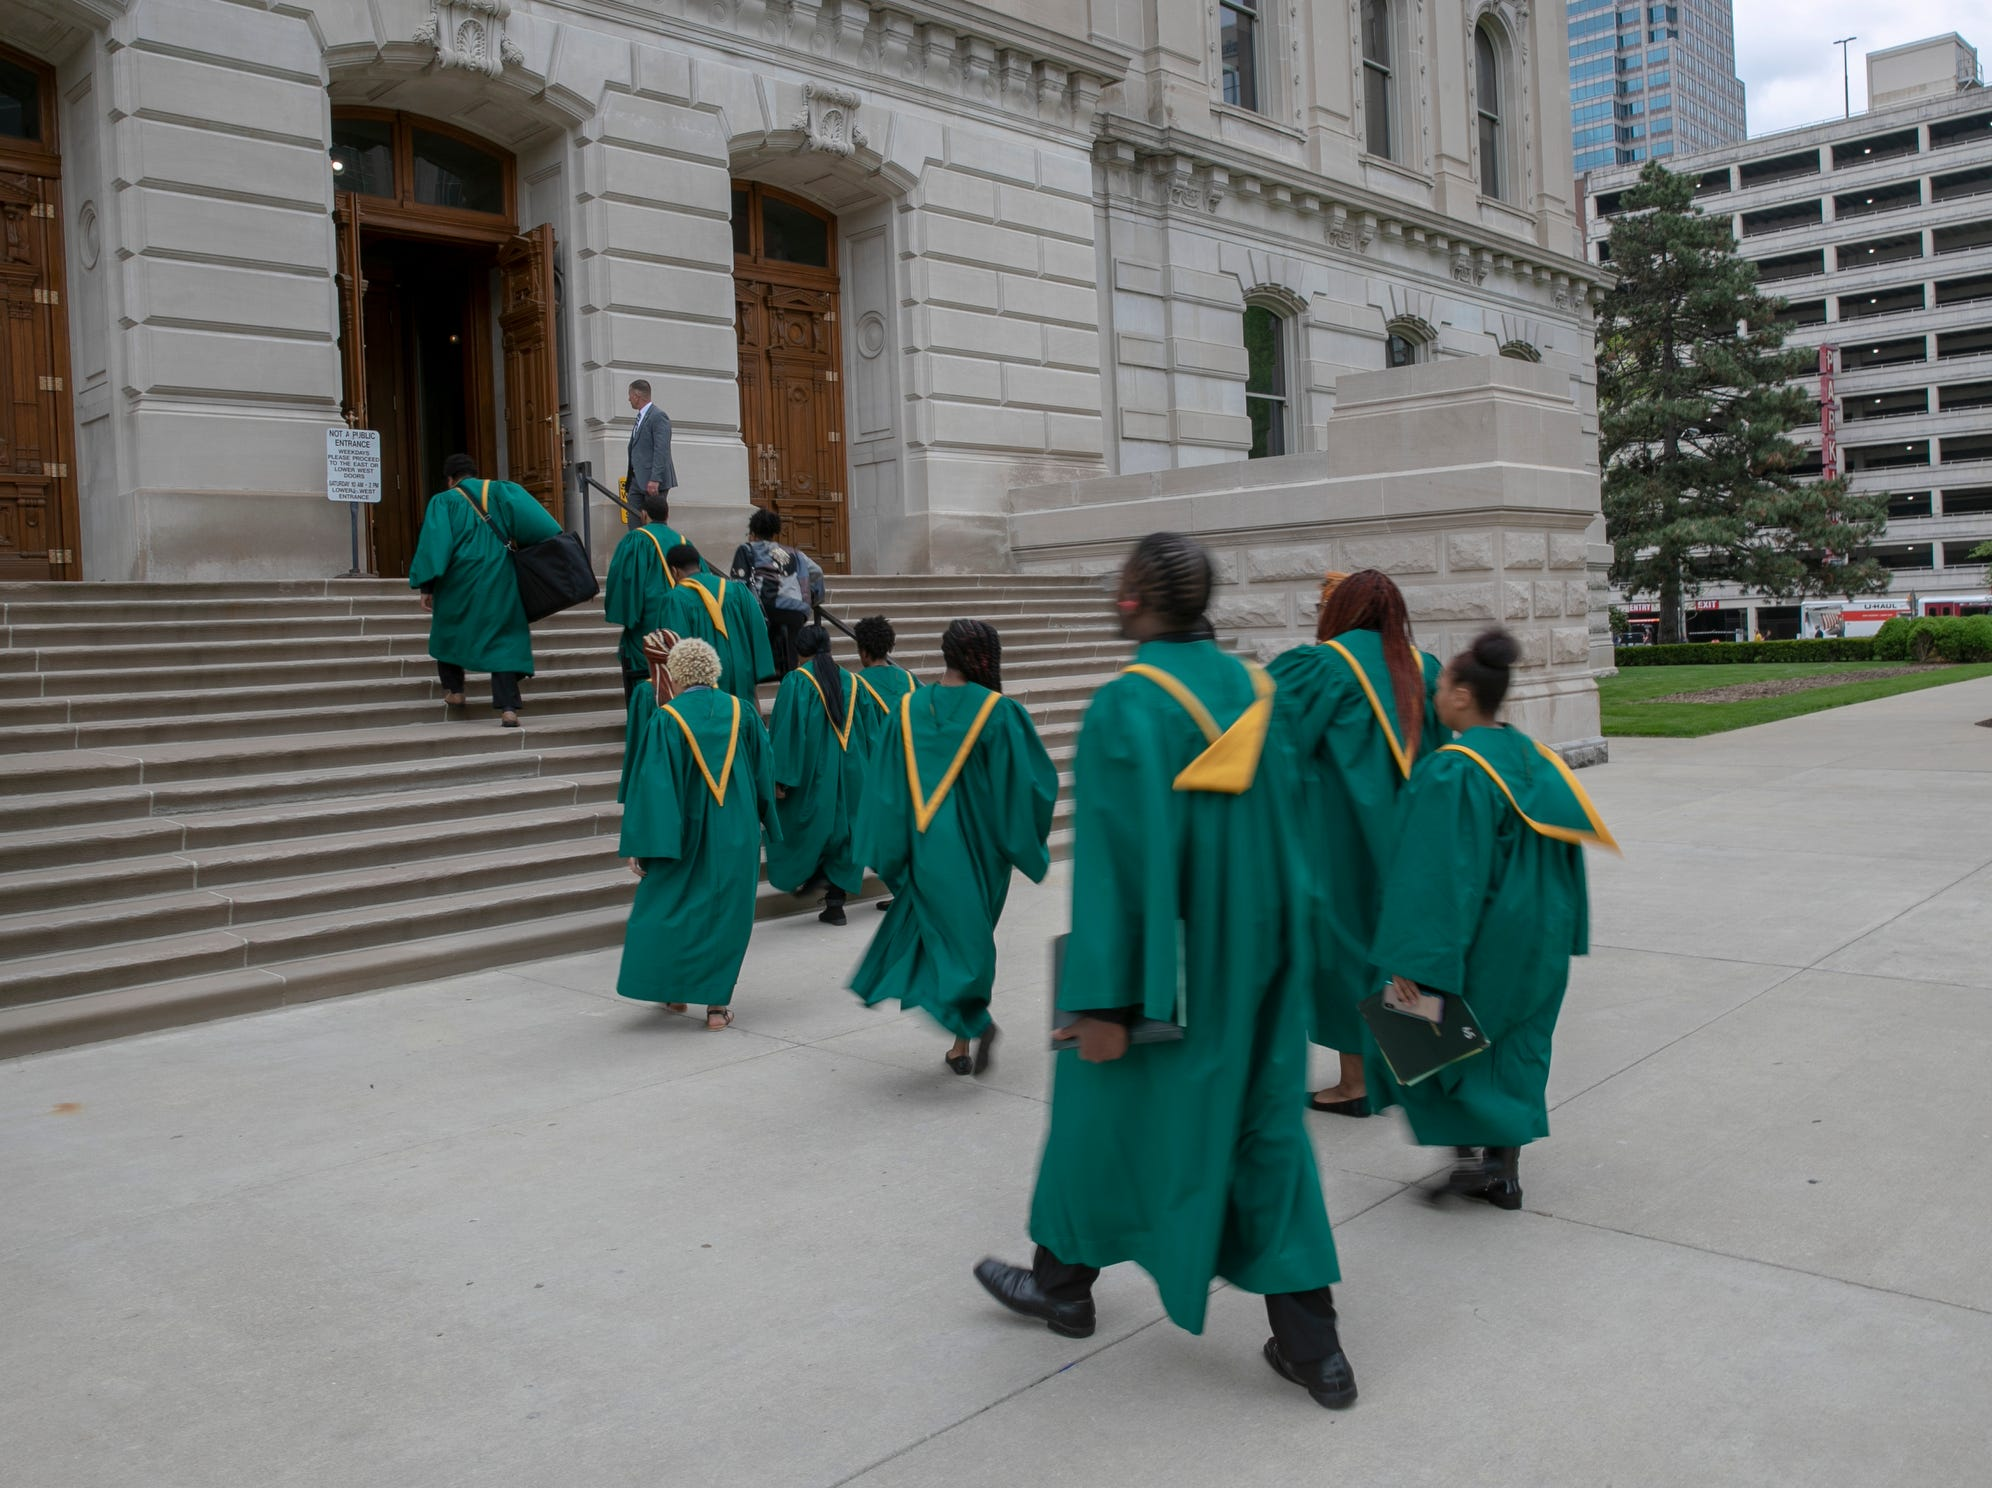 Singers from Crispus Attucks High School walk toward a service for Indiana's Birch Bayh, who died on March 14, and was a three-term U.S. Senator, Indiana Statehouse, Indianapolis, Wednesday, May 1, 2019.